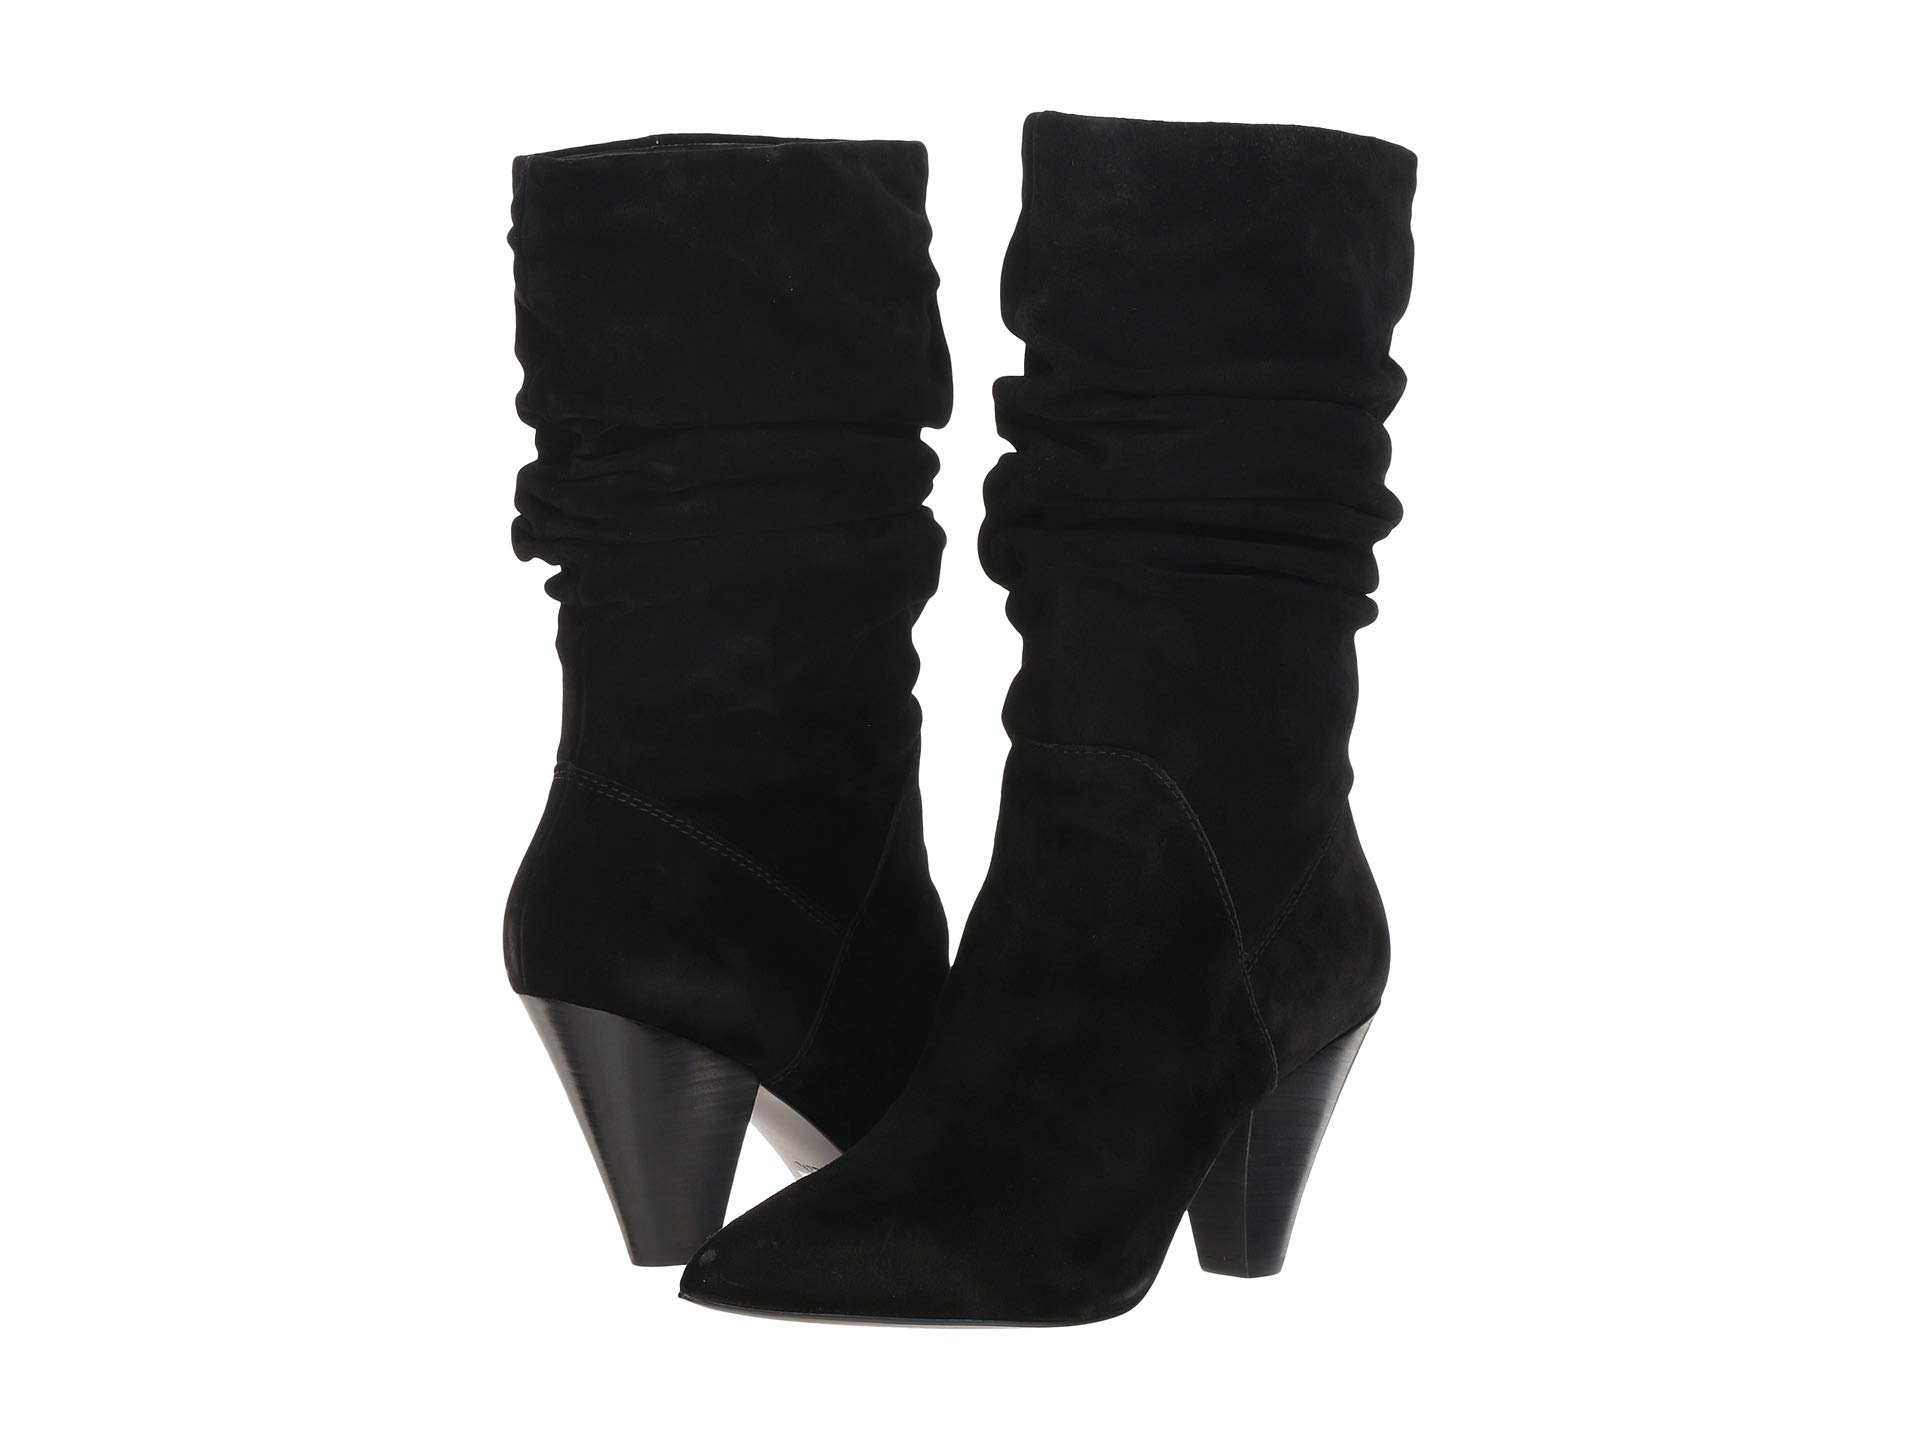 ALDO Cradolia The essential style of the the the scrunchy ALDO Cradolia mid-calf boot proves its no slouch! 4c6419